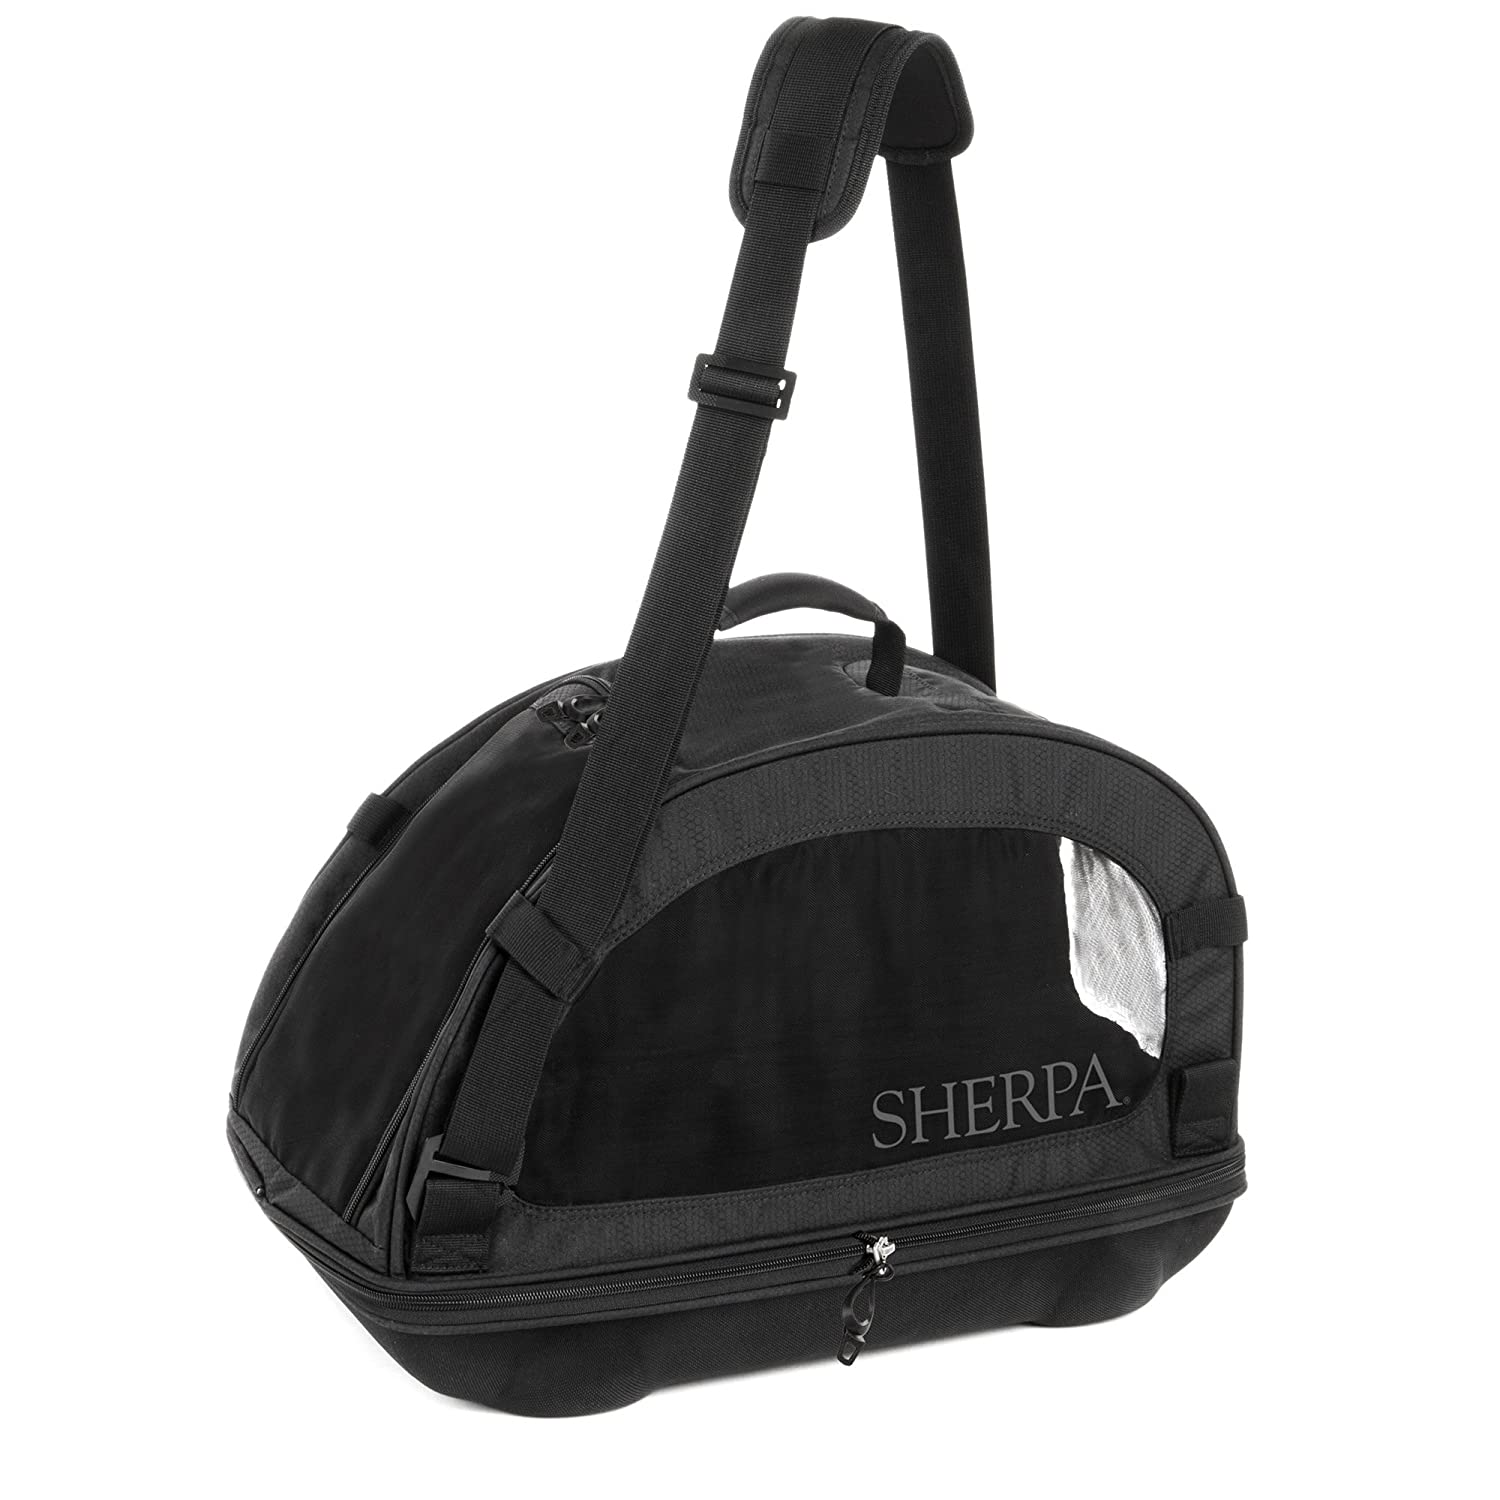 Sherpa Travel Comfort Ride Pet Carrier Medium Black Quaker Pet Group 56015